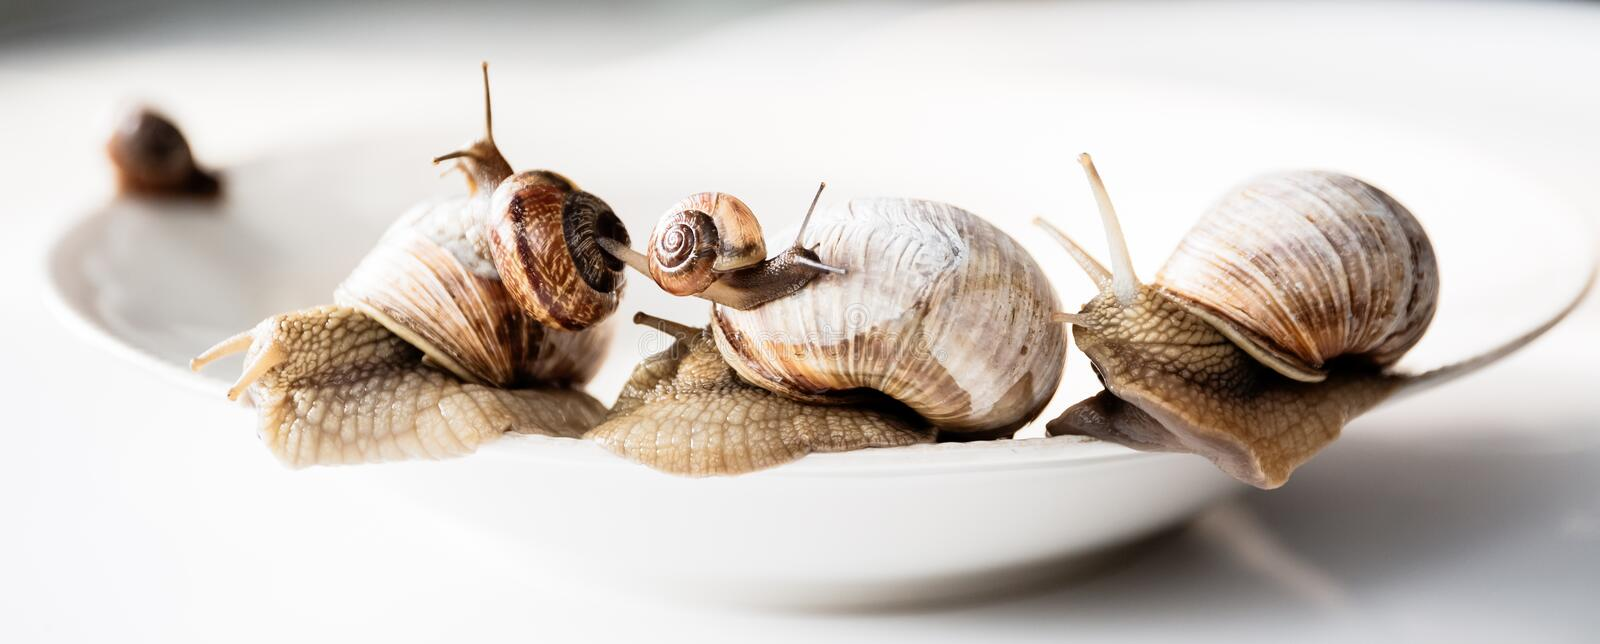 Garden snails isolated on white background. Several garden snails isolated on white background, gourmet living delicacies royalty free stock photography